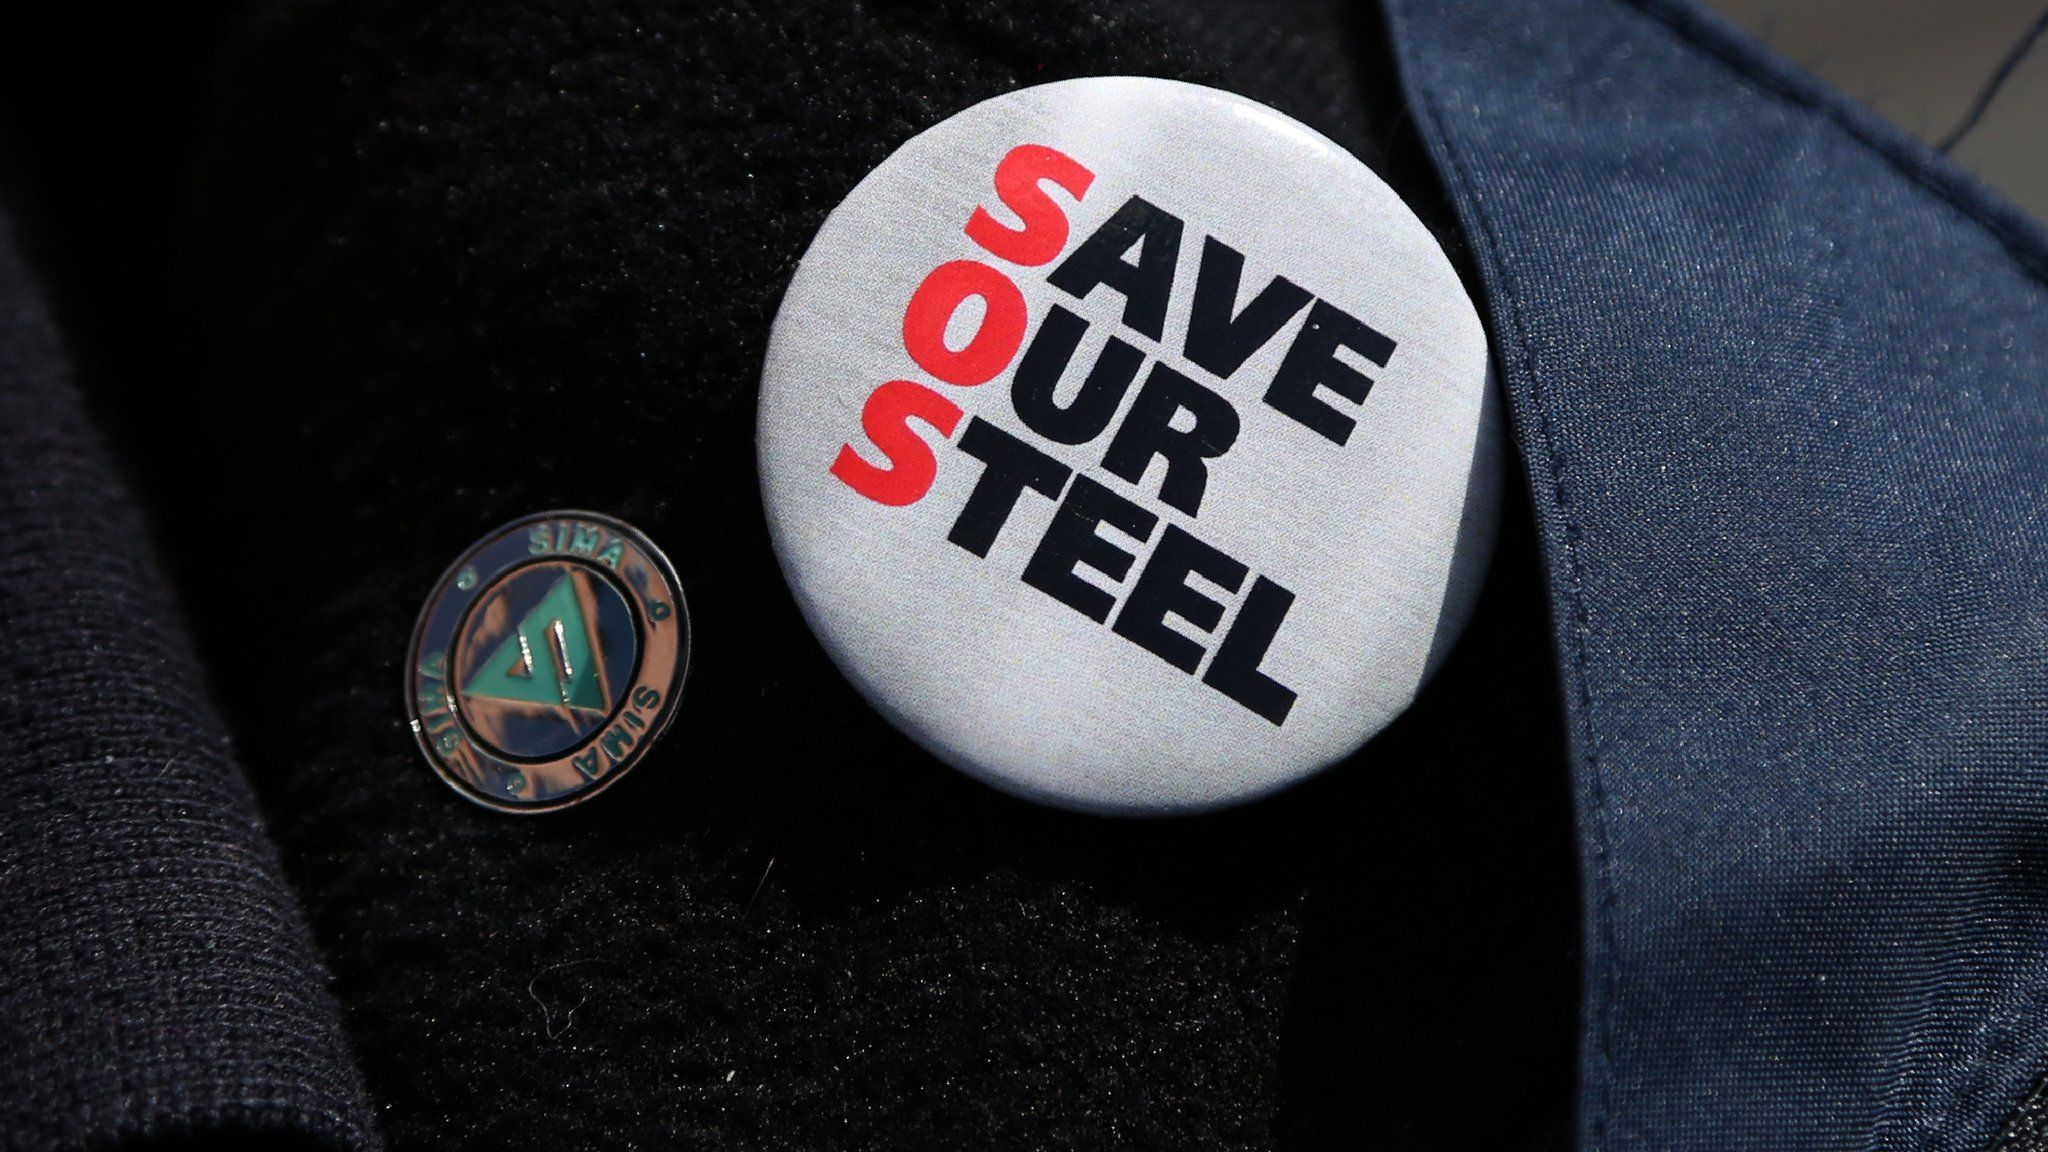 Save our Steel badge